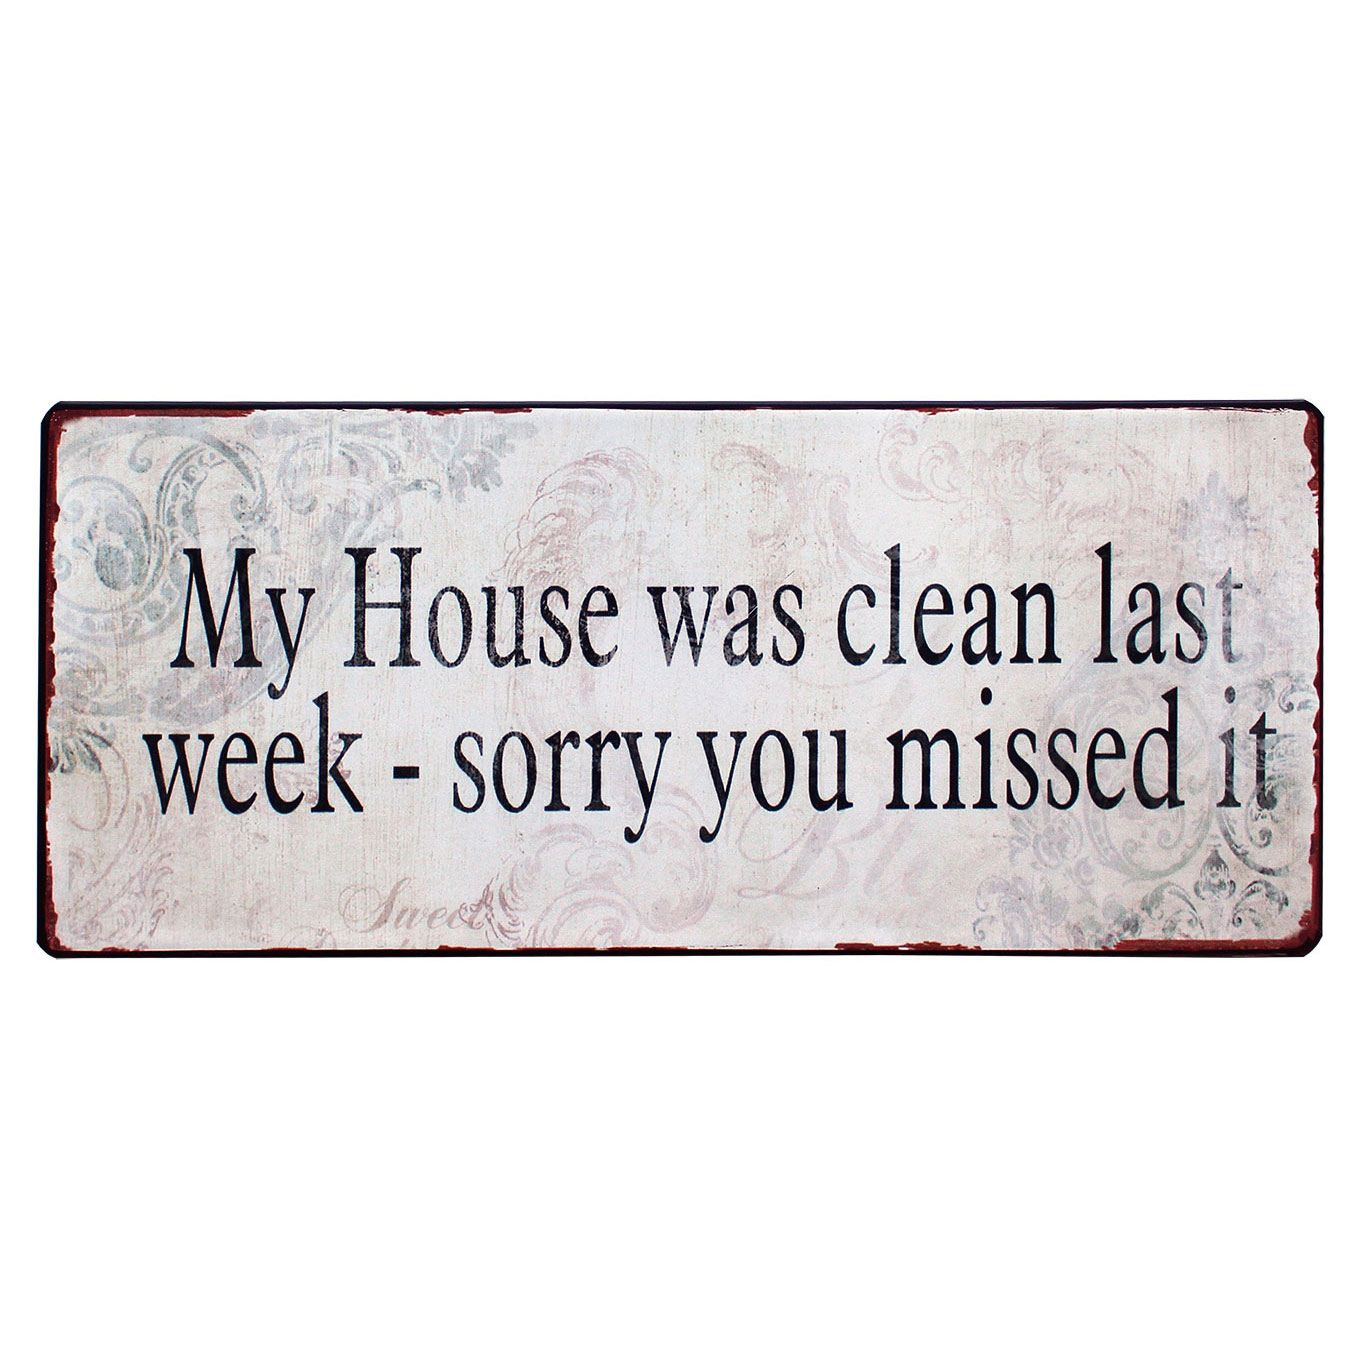 N em1370 my house was clean last week sorry you missed itit rustiek tekst bord cadeau kado online metaal deco decoratie